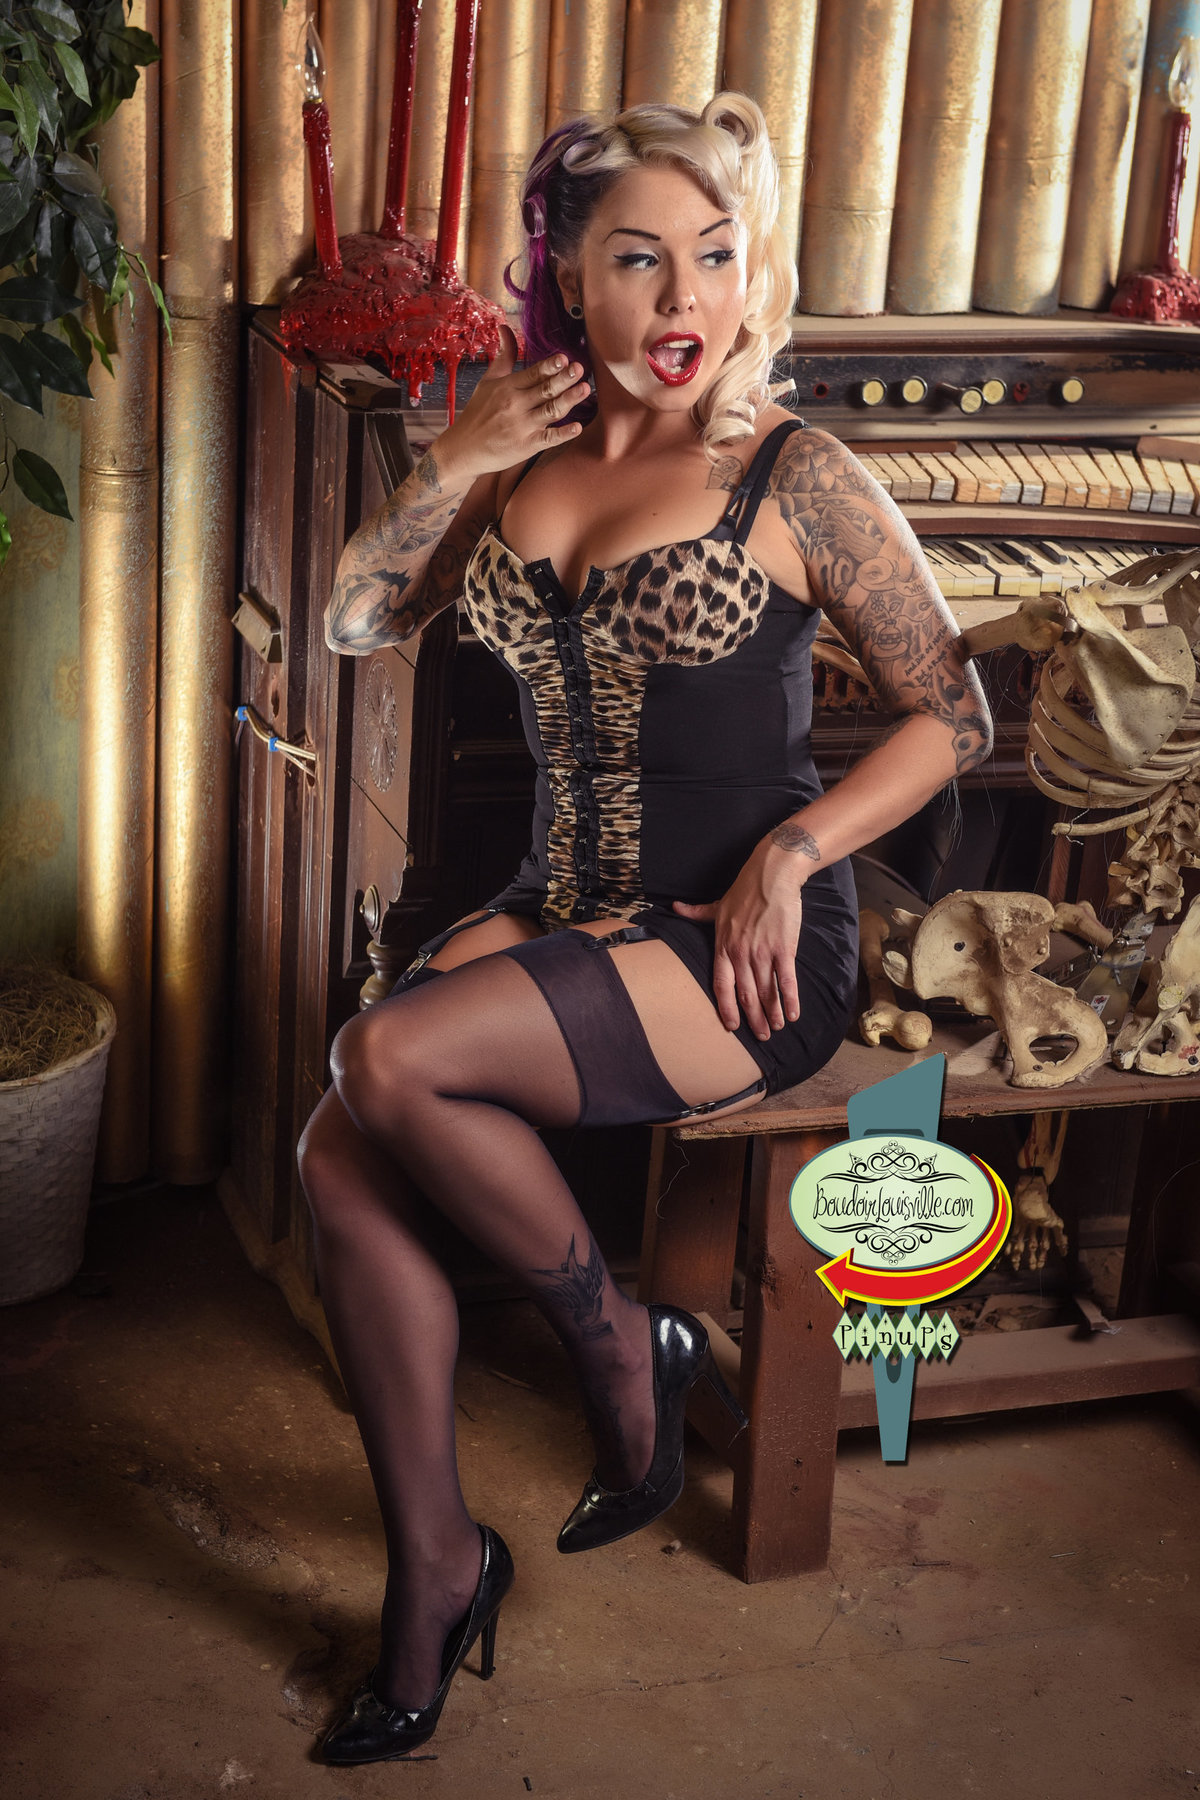 Boudoir Louisville - Pinup Girl Photography Studio - Pinup Photographers-201